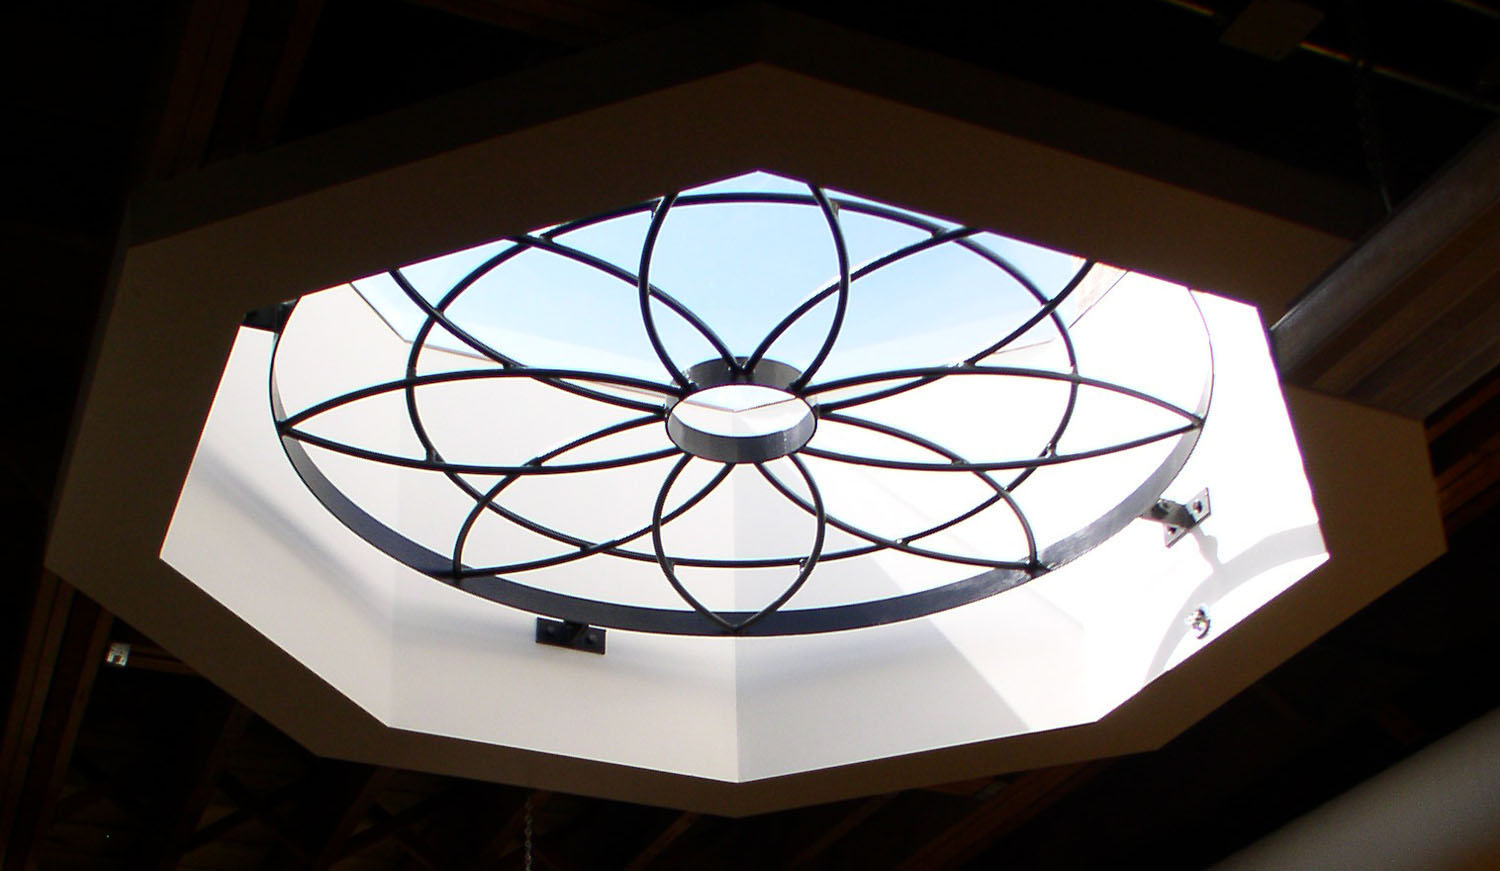 Urban Circle Training Centre, interior photo of ceiling detail